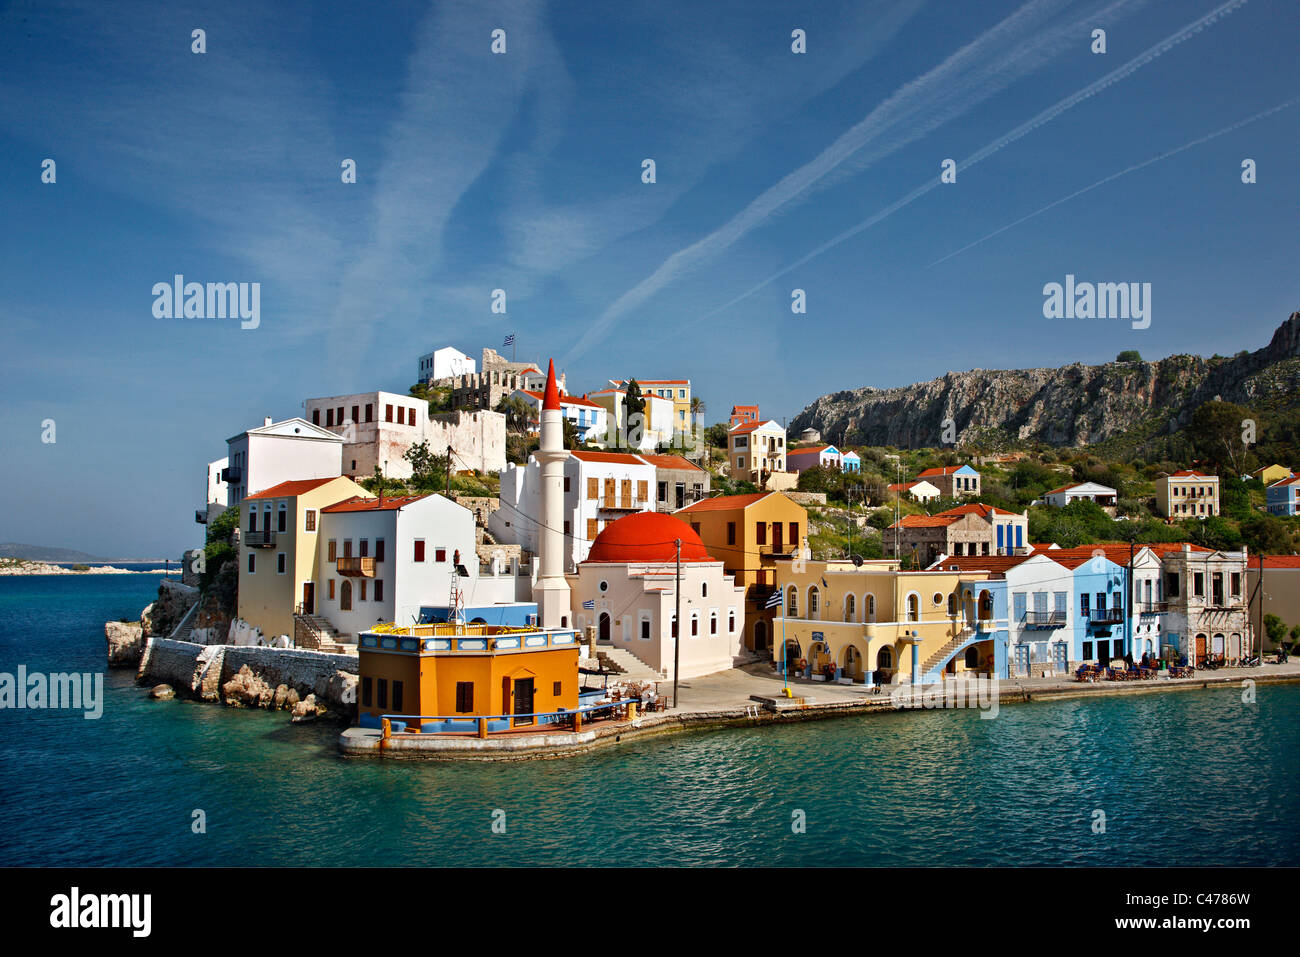 Partial view of the picturesque village of Kastellorizo (or 'Meghisti') island, Dodecanese, Greece - Stock Image